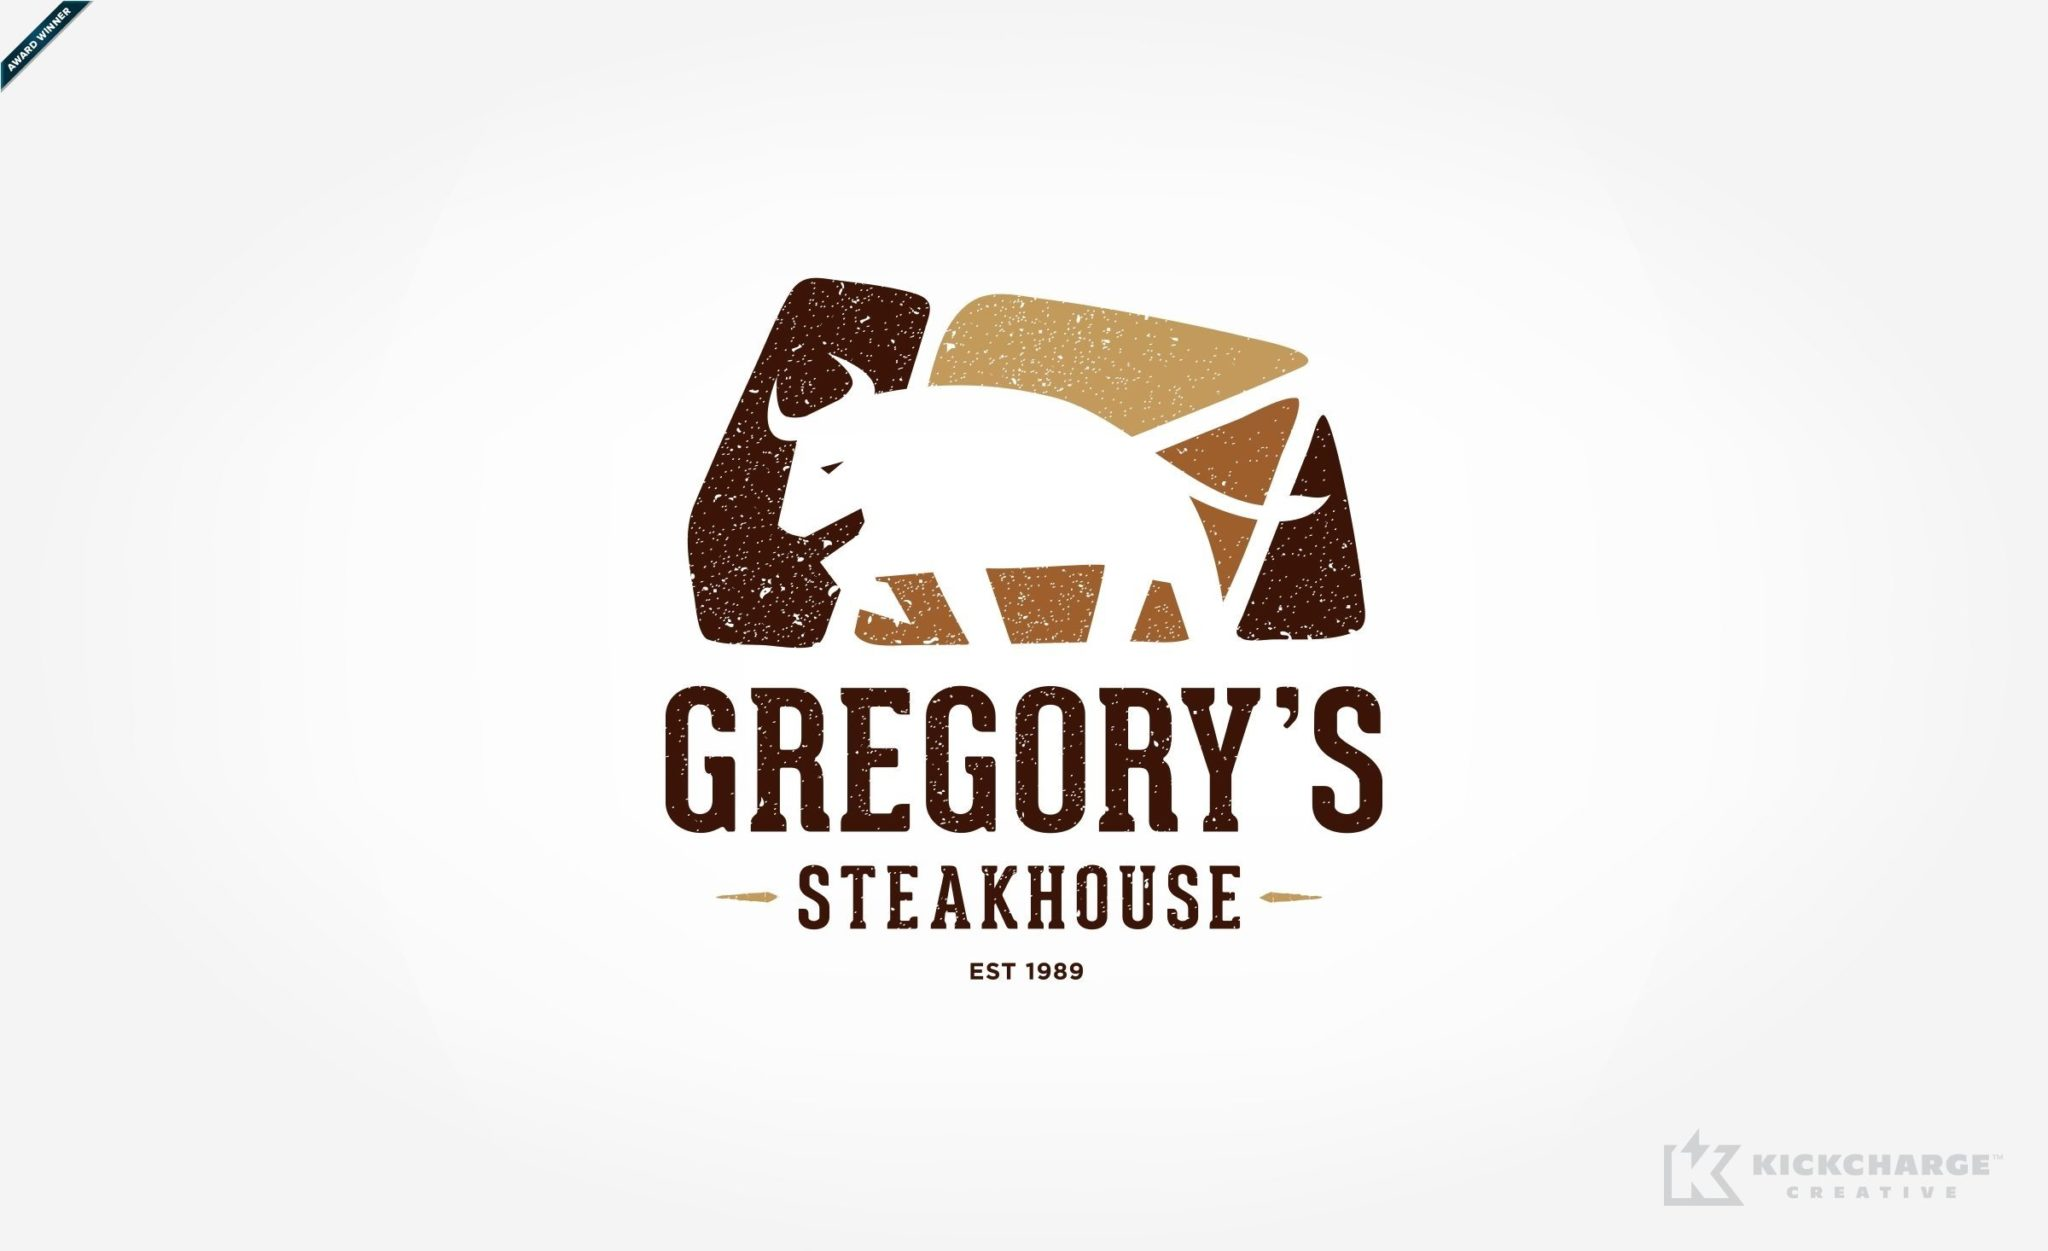 Gregory's Steakhouse